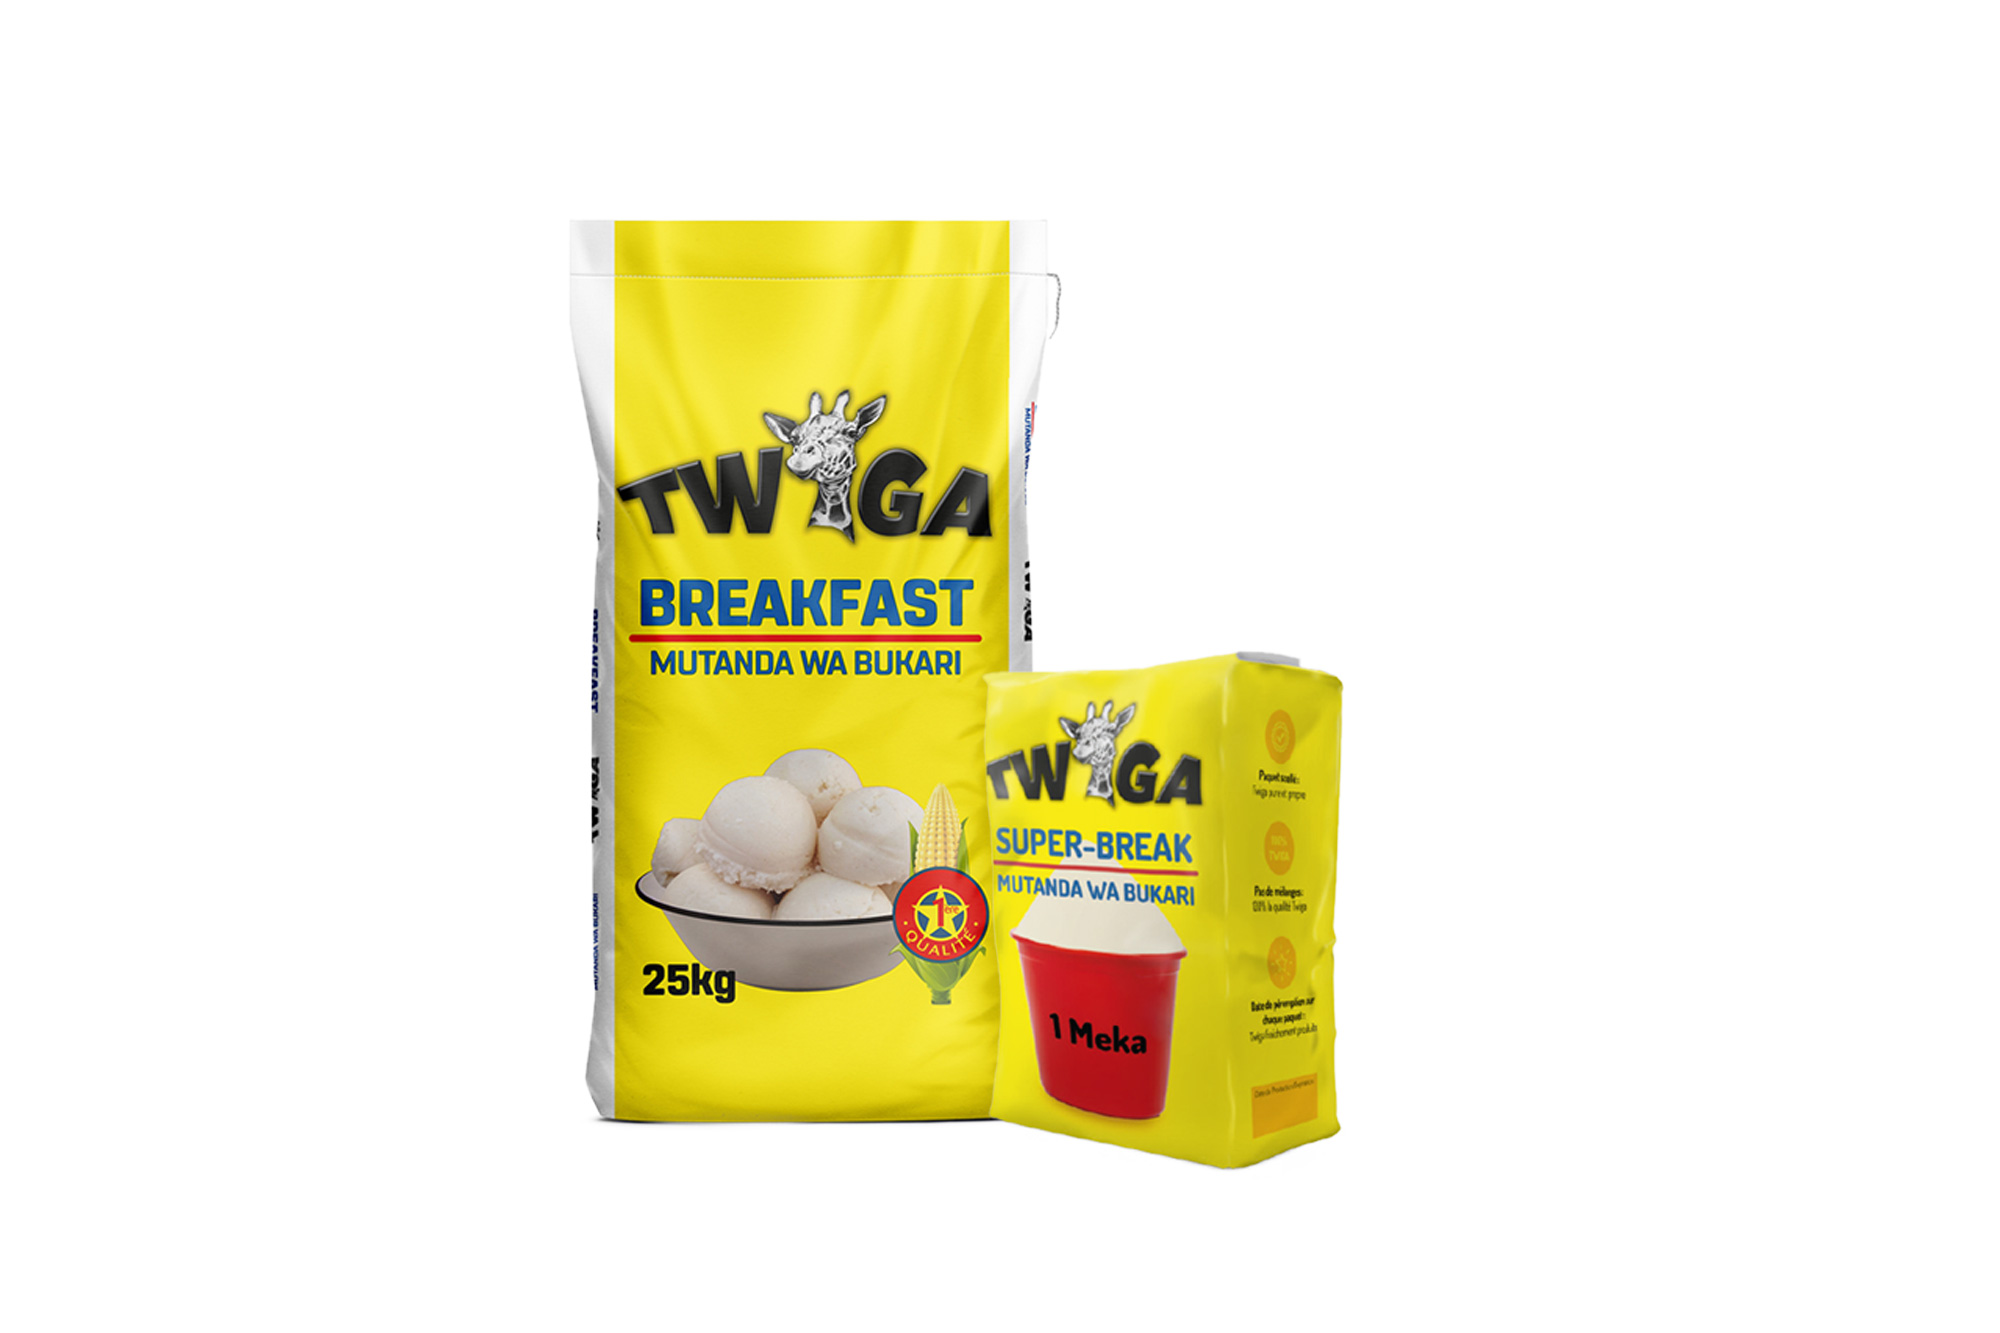 """""""Twiga"""" - the Swahili word for Giraffe is a superior perfectly granulated, premium Maize Meal product, that is known for its distinguished quality, going from its high-end packaging all the way to the perfectly milled maize meal with a balanced granulation for a very 'long-lasting' Bukari. Available in 25kg and the handy 'Meka' packaging."""